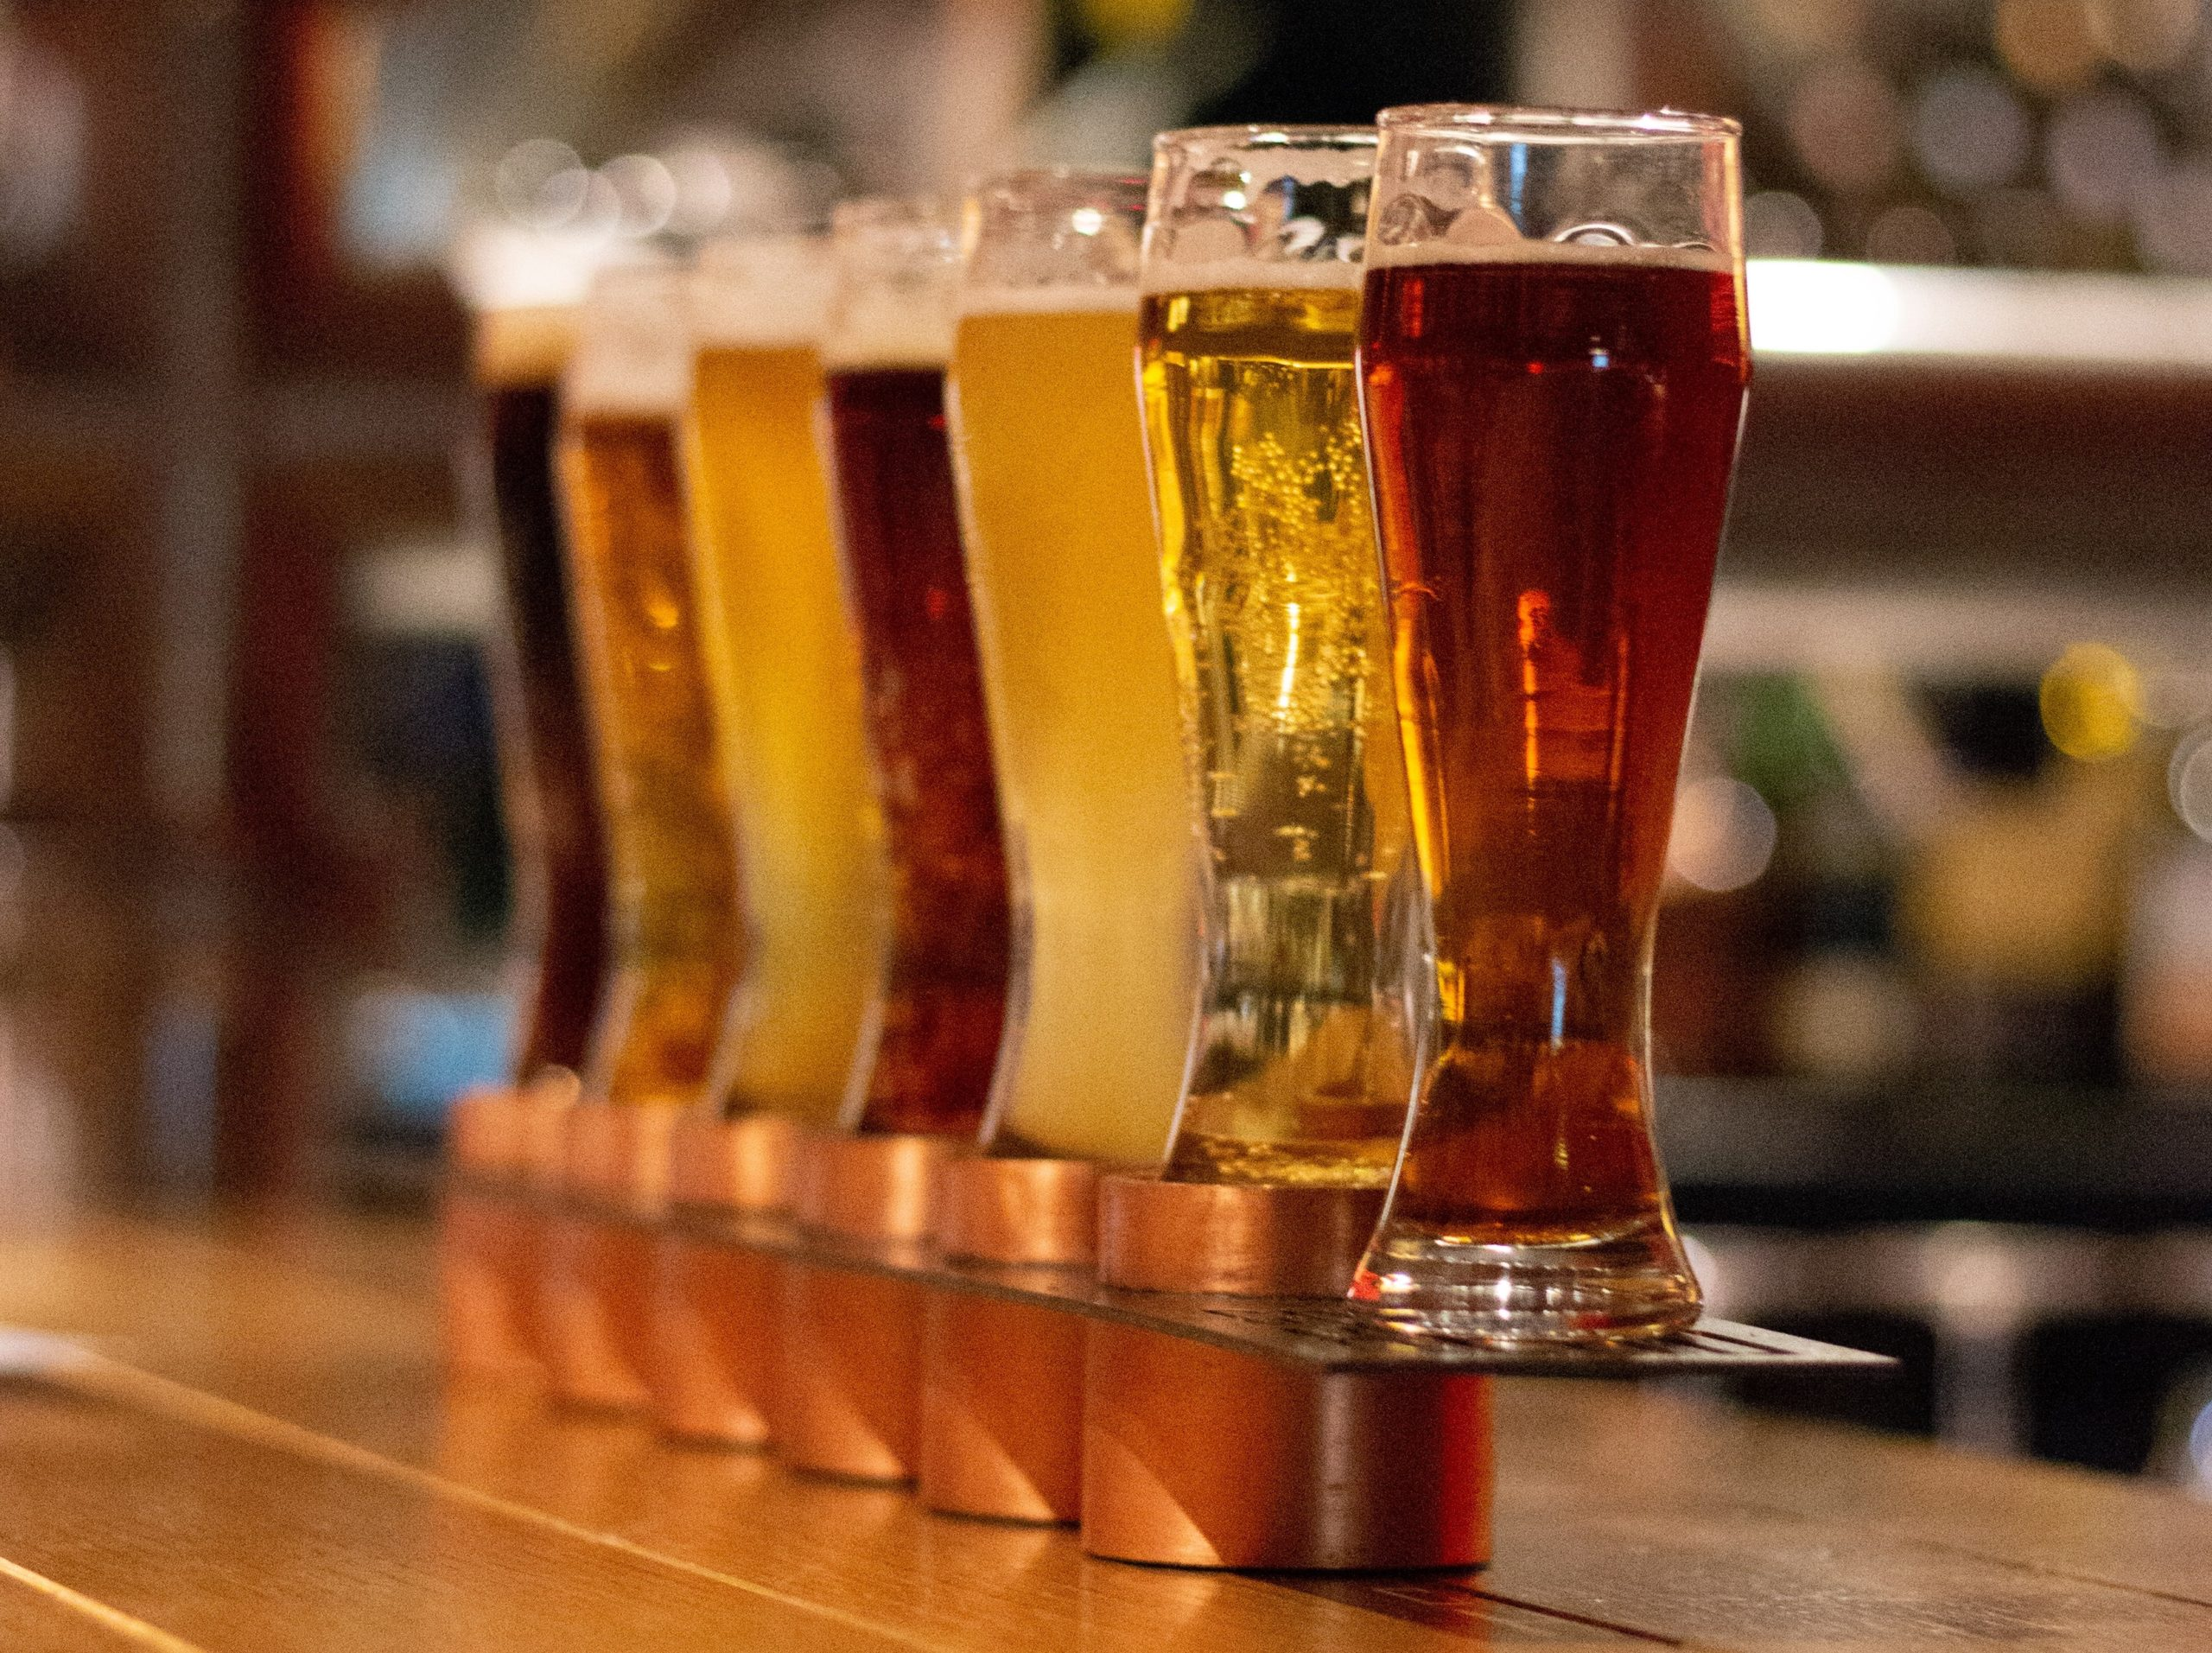 Flight of different colored ales on a wood bar corner